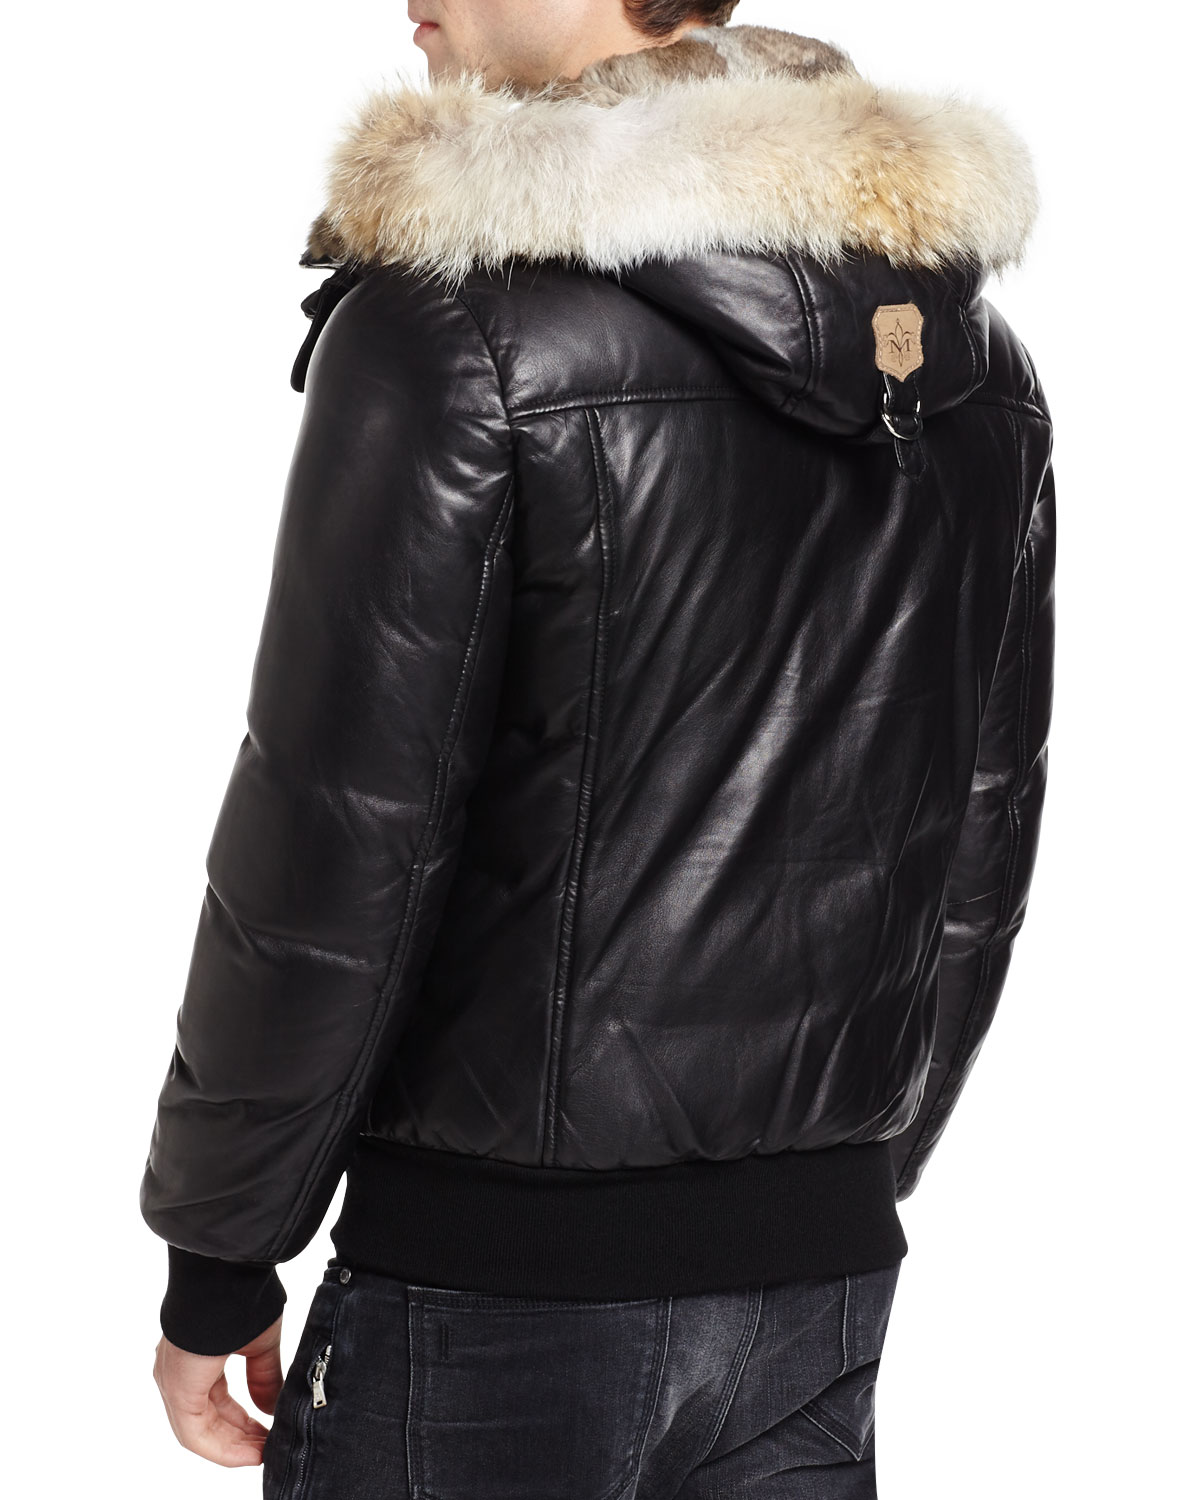 d8b15acd4 good mackage leather winter jacket for sale 92da9 dbbc3